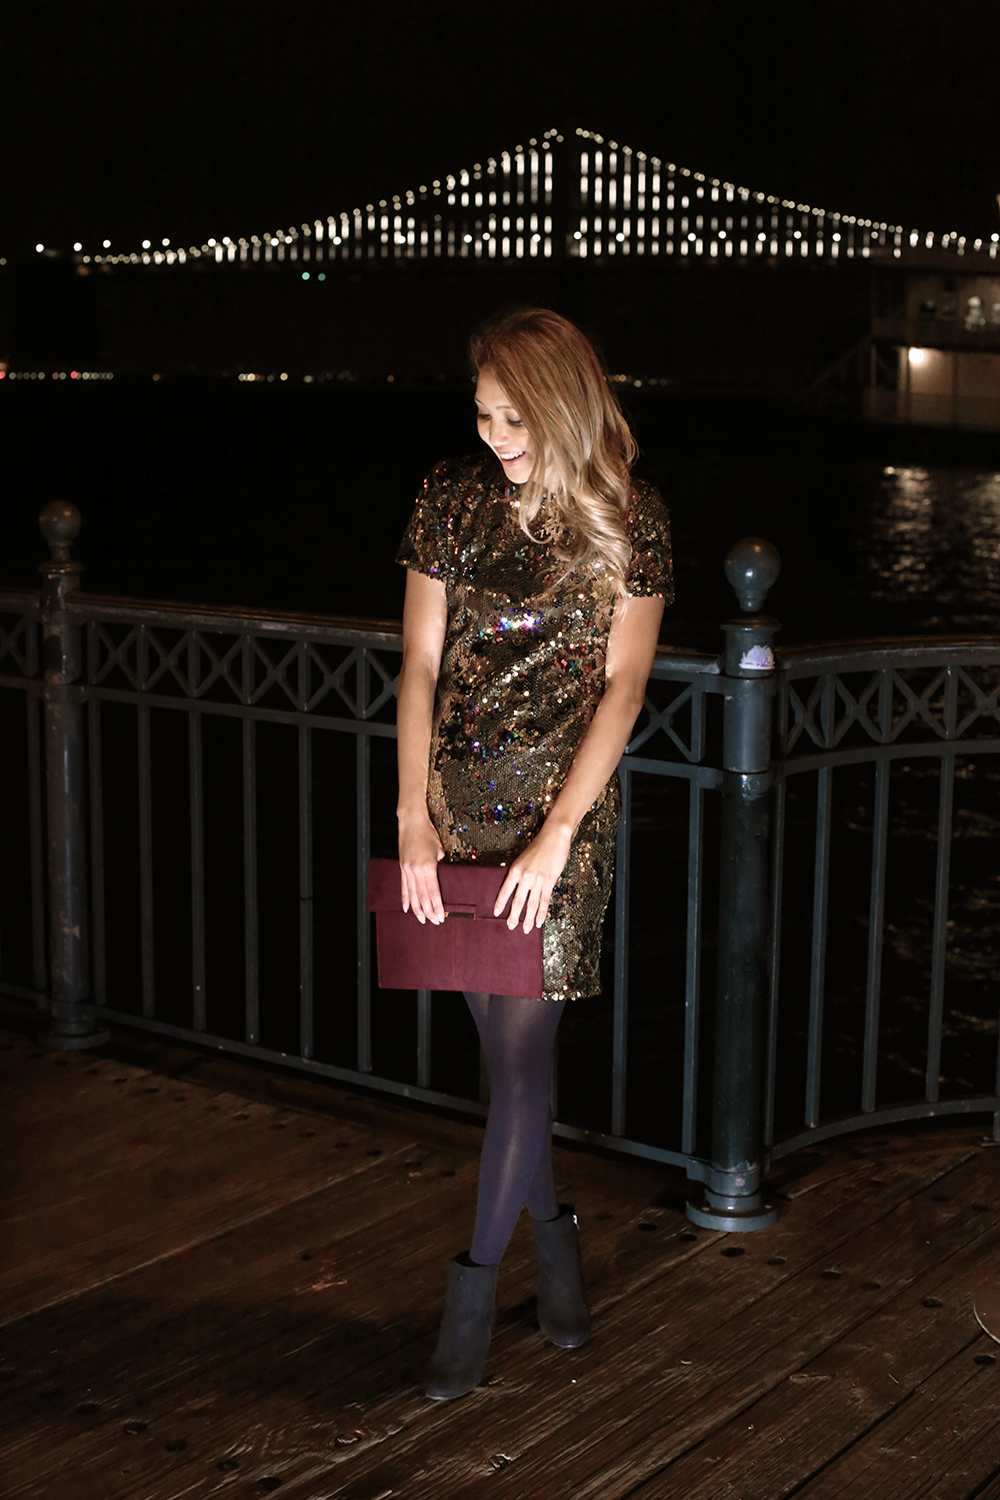 beyond-basic-blog-dorothy-perkins-dressed-to-party-san-francisco-pier-06